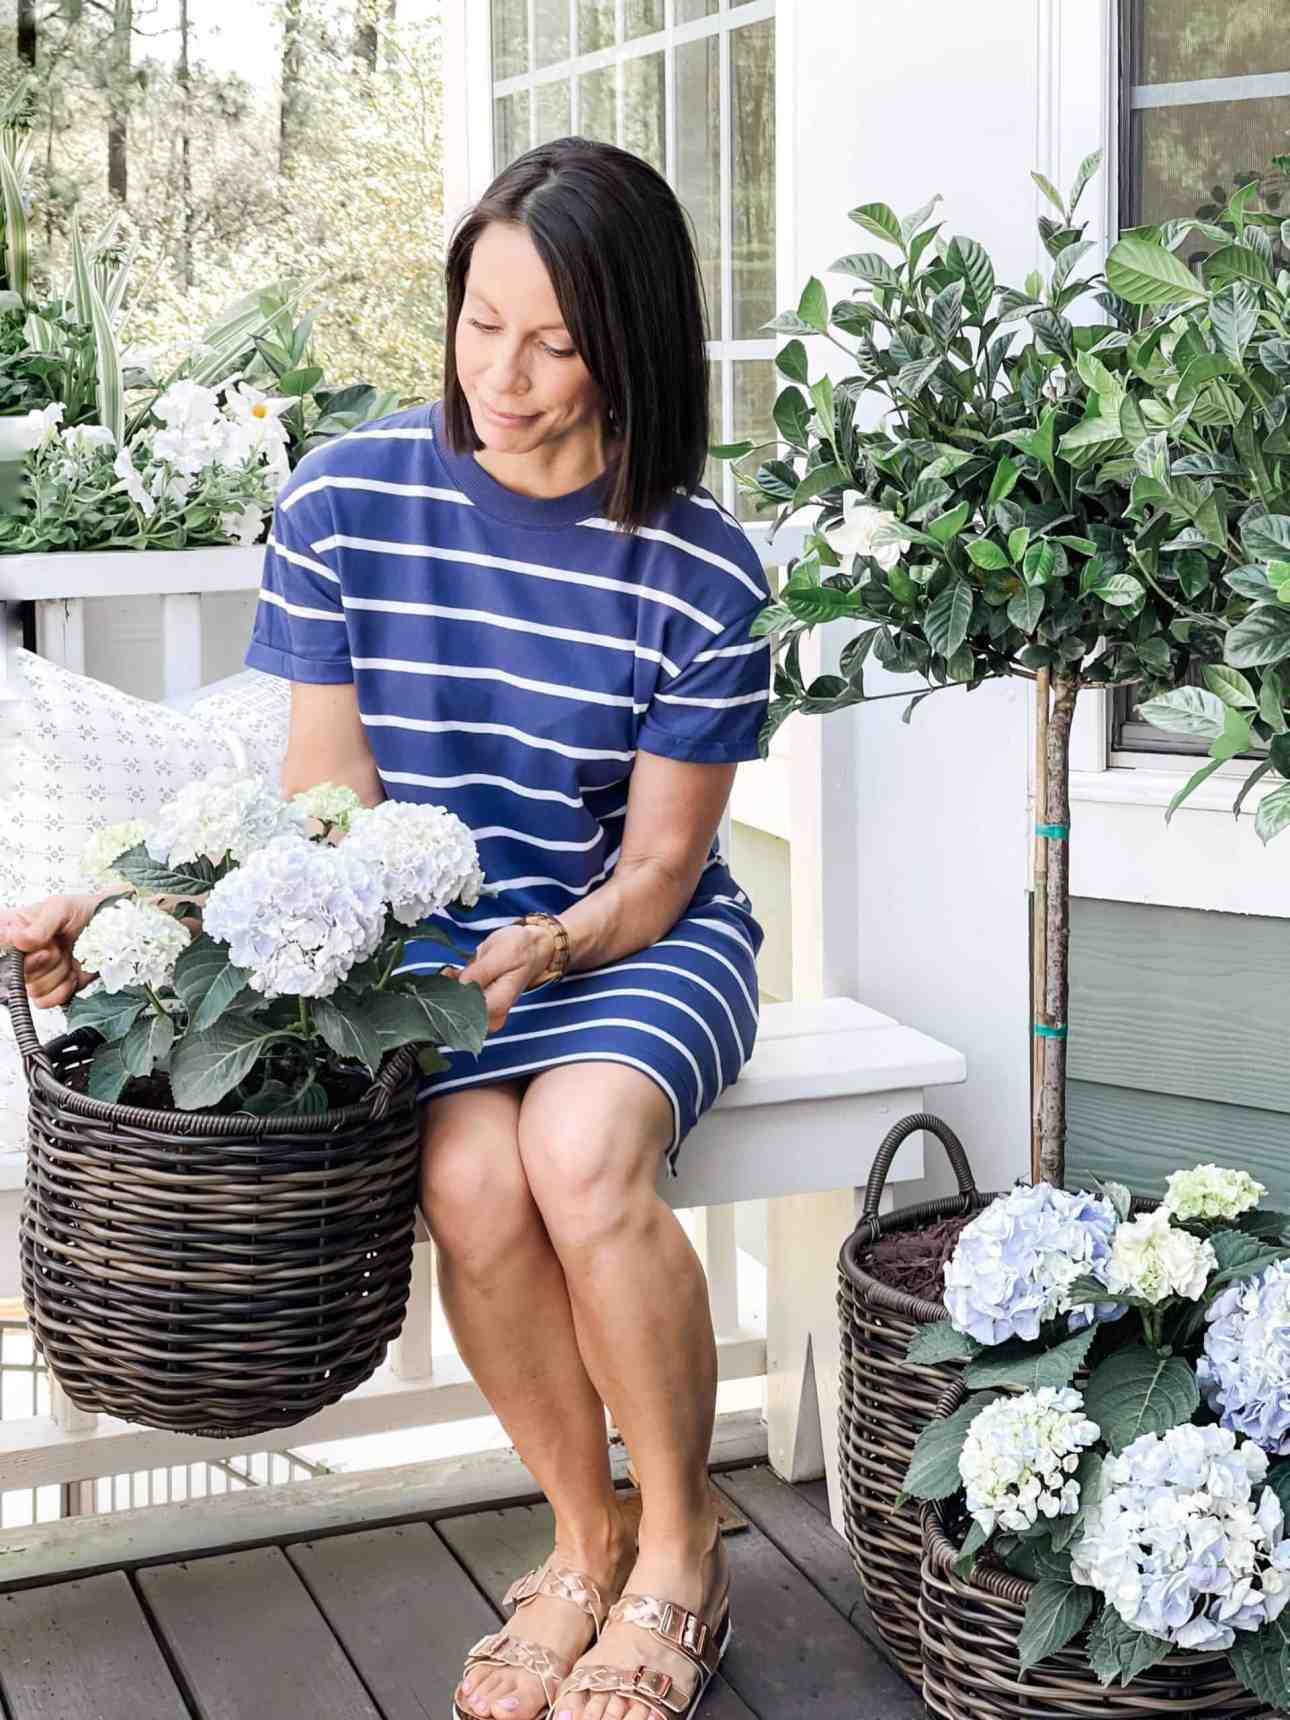 Blue and white dress with hydrangeas in baskets from Walmart.